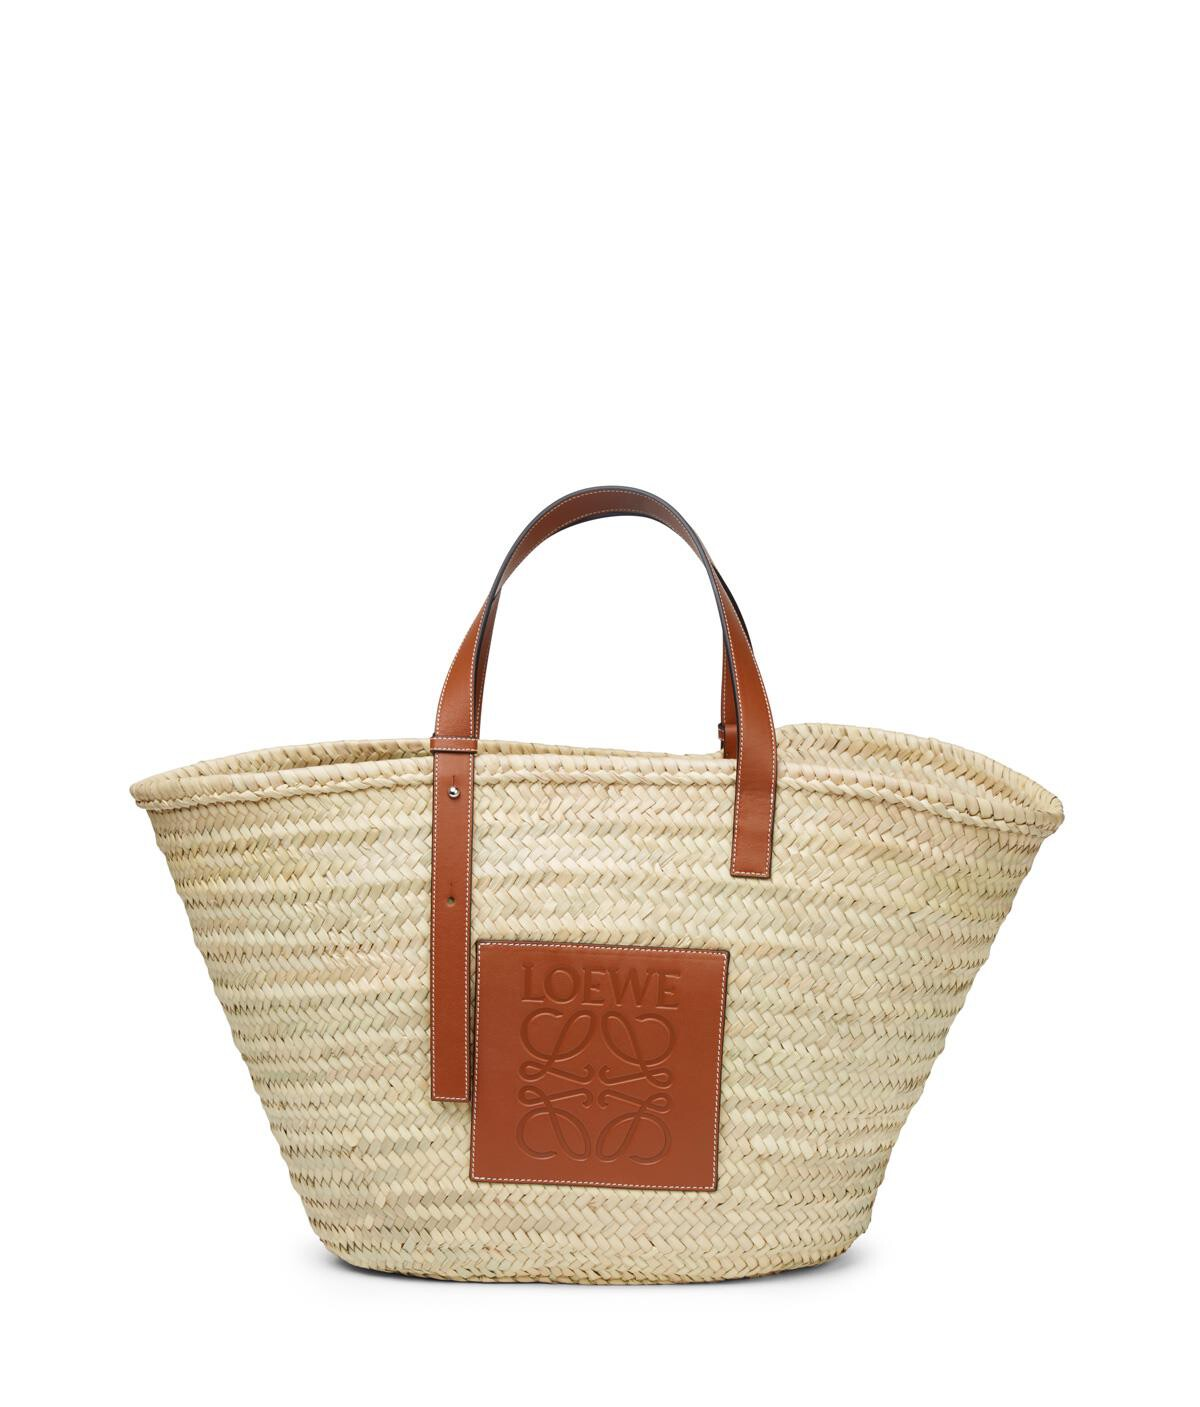 LOEWE Basket Large Bag Natural/Tan front